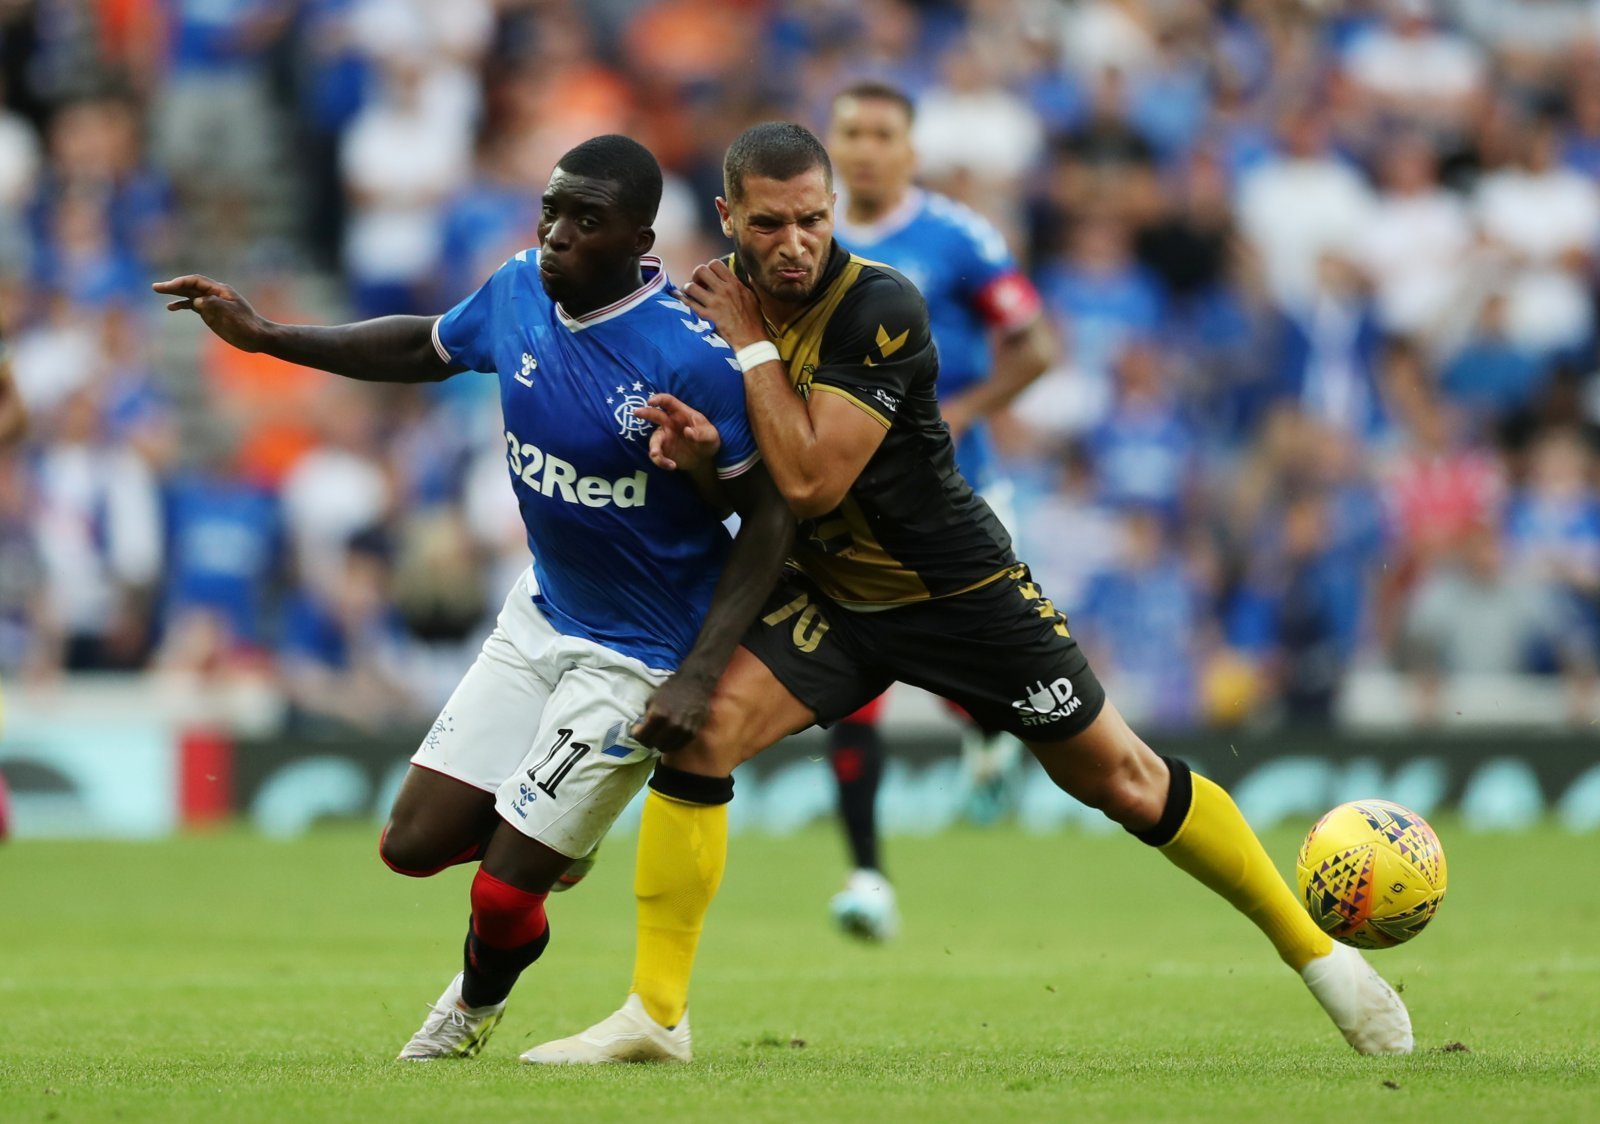 Rangers: Fans on Twitter couldn't get enough of magnificent Sheyi Ojo